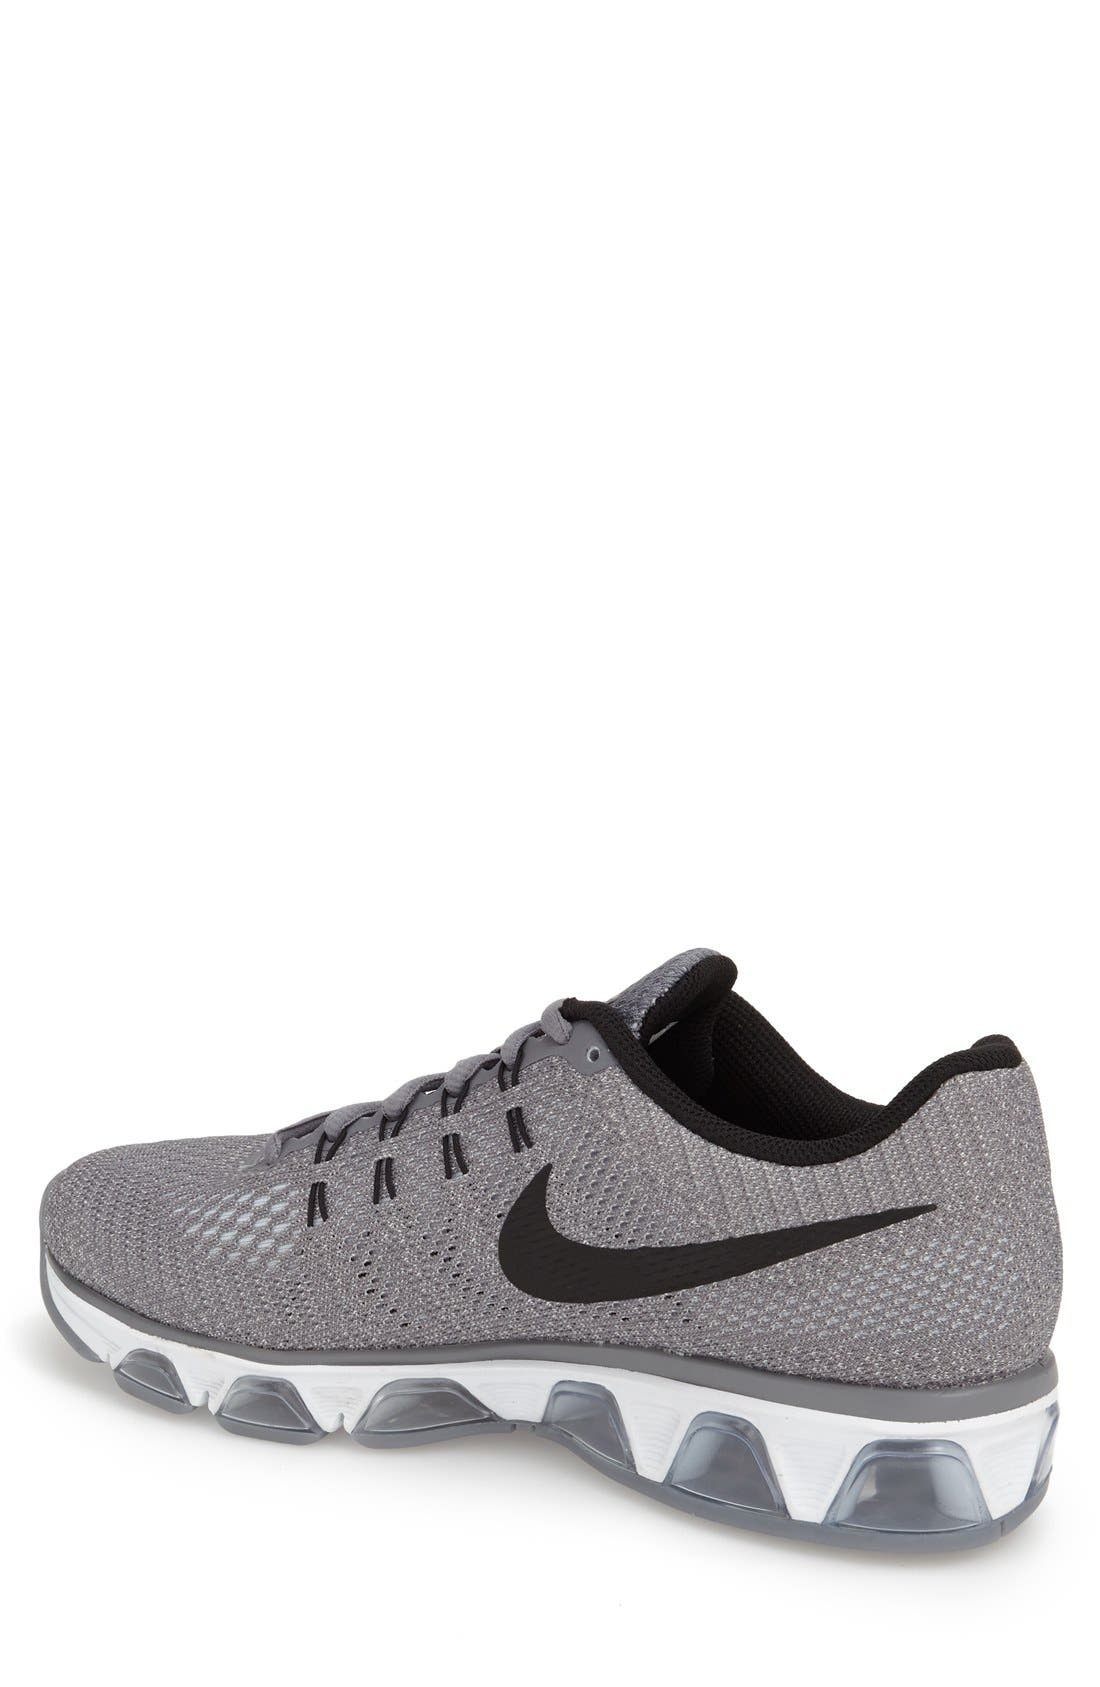 info for 9be97 ffbbf ... low price nike air max tailwind 8 running shoe men nordstrom cd145 d7570